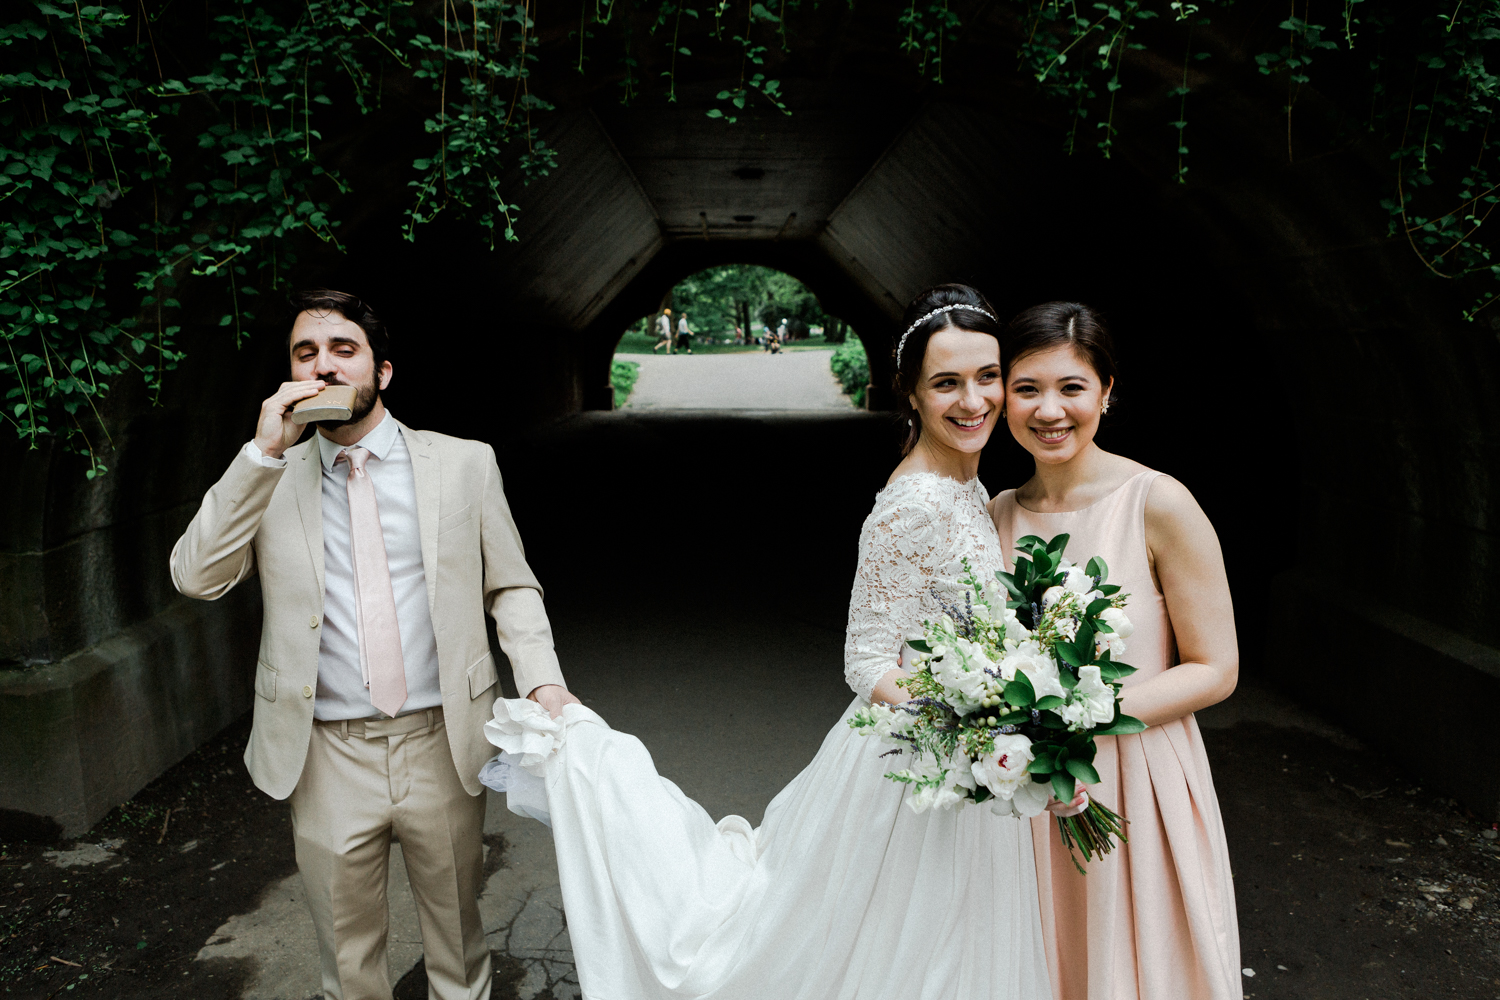 lissie_loomis_photo_nyc_brooklyn_wedding_engagement_photographer_photography-58.JPG